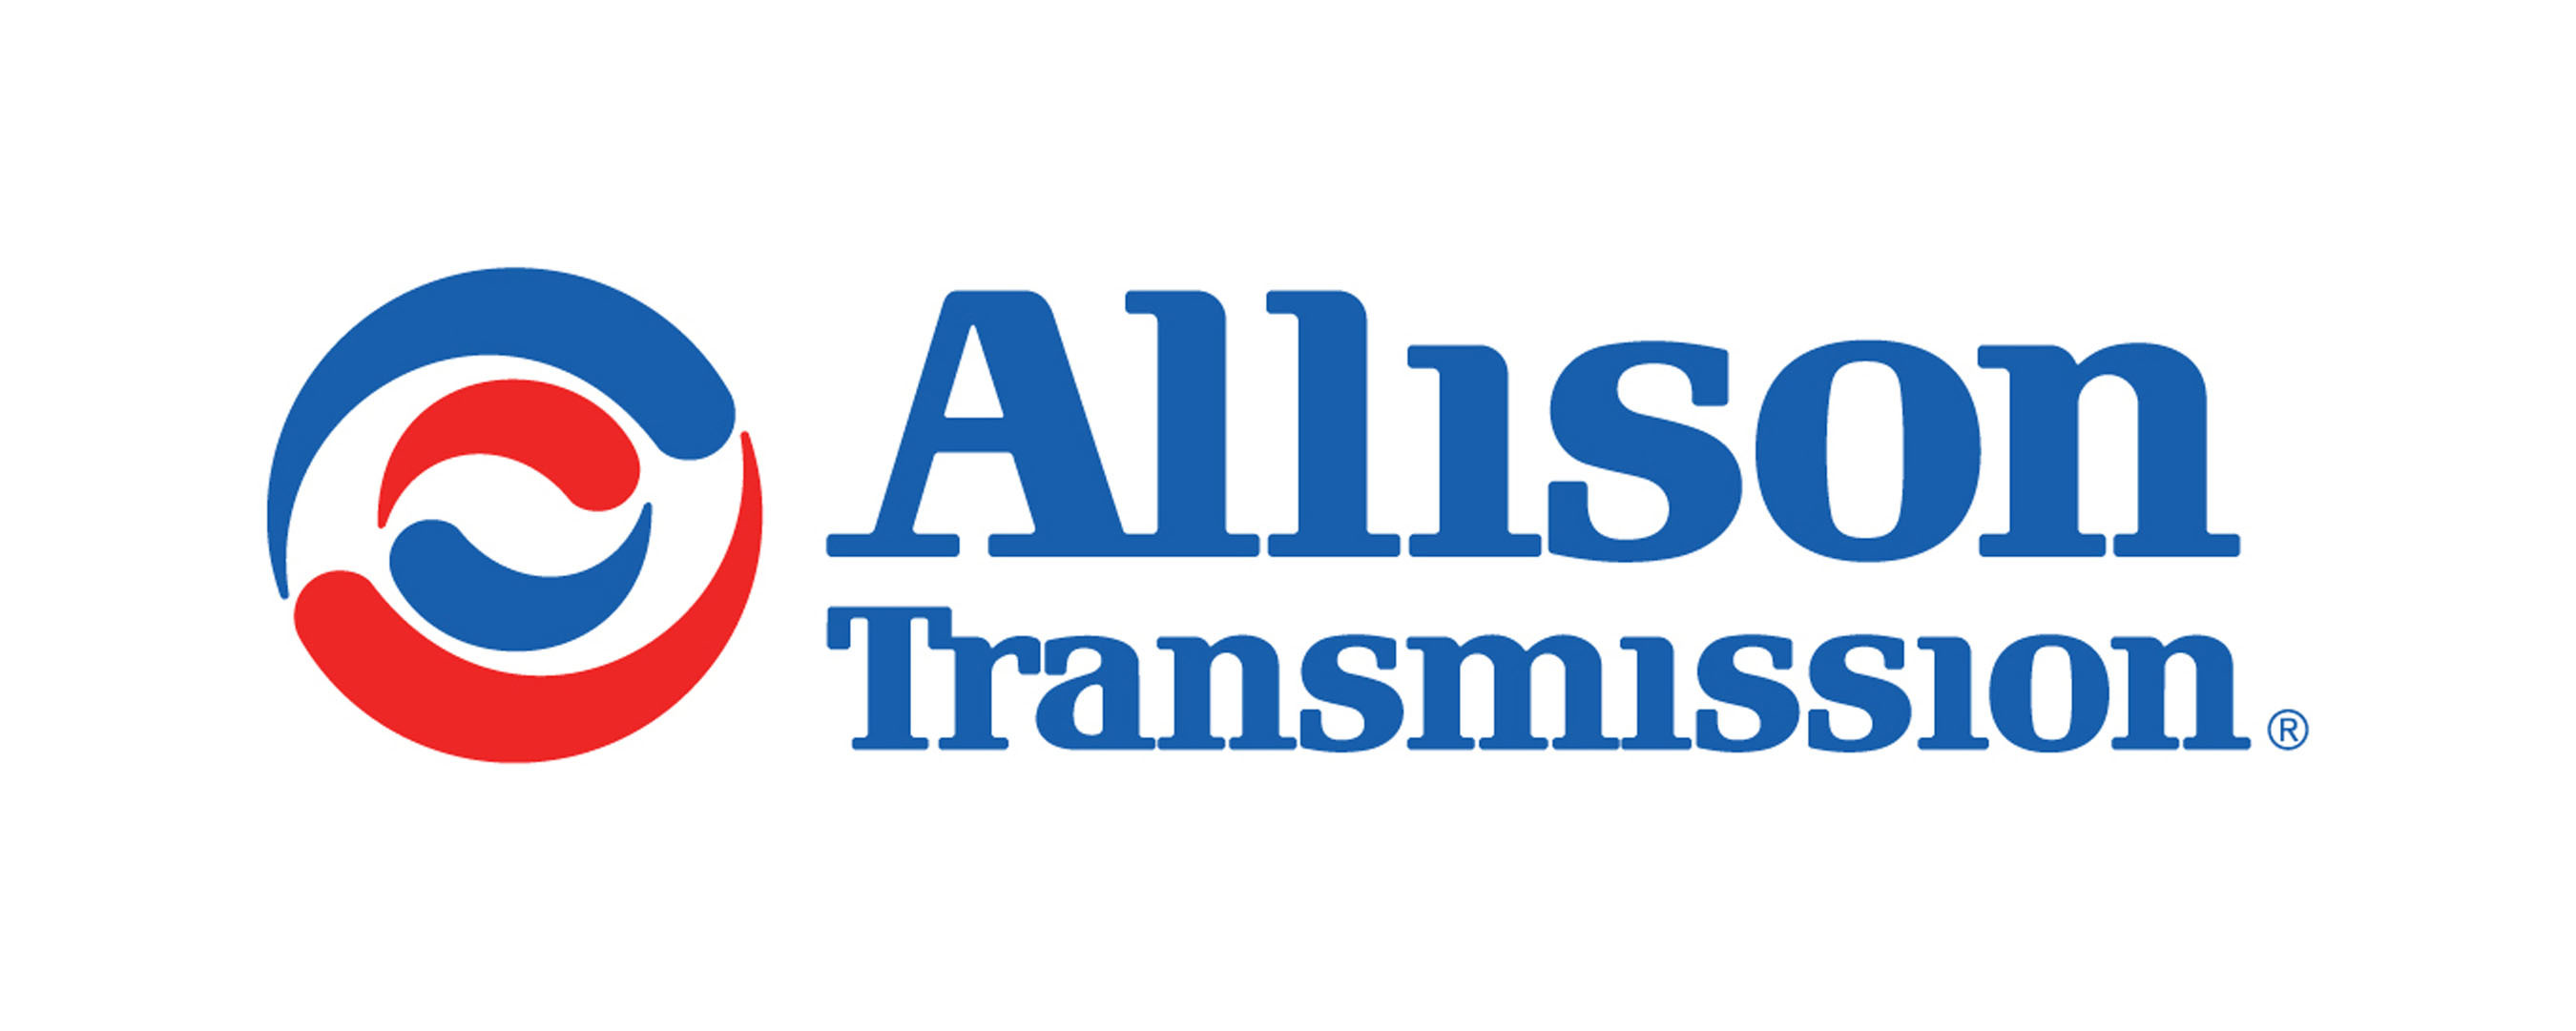 Allison Transmission Inc. logo